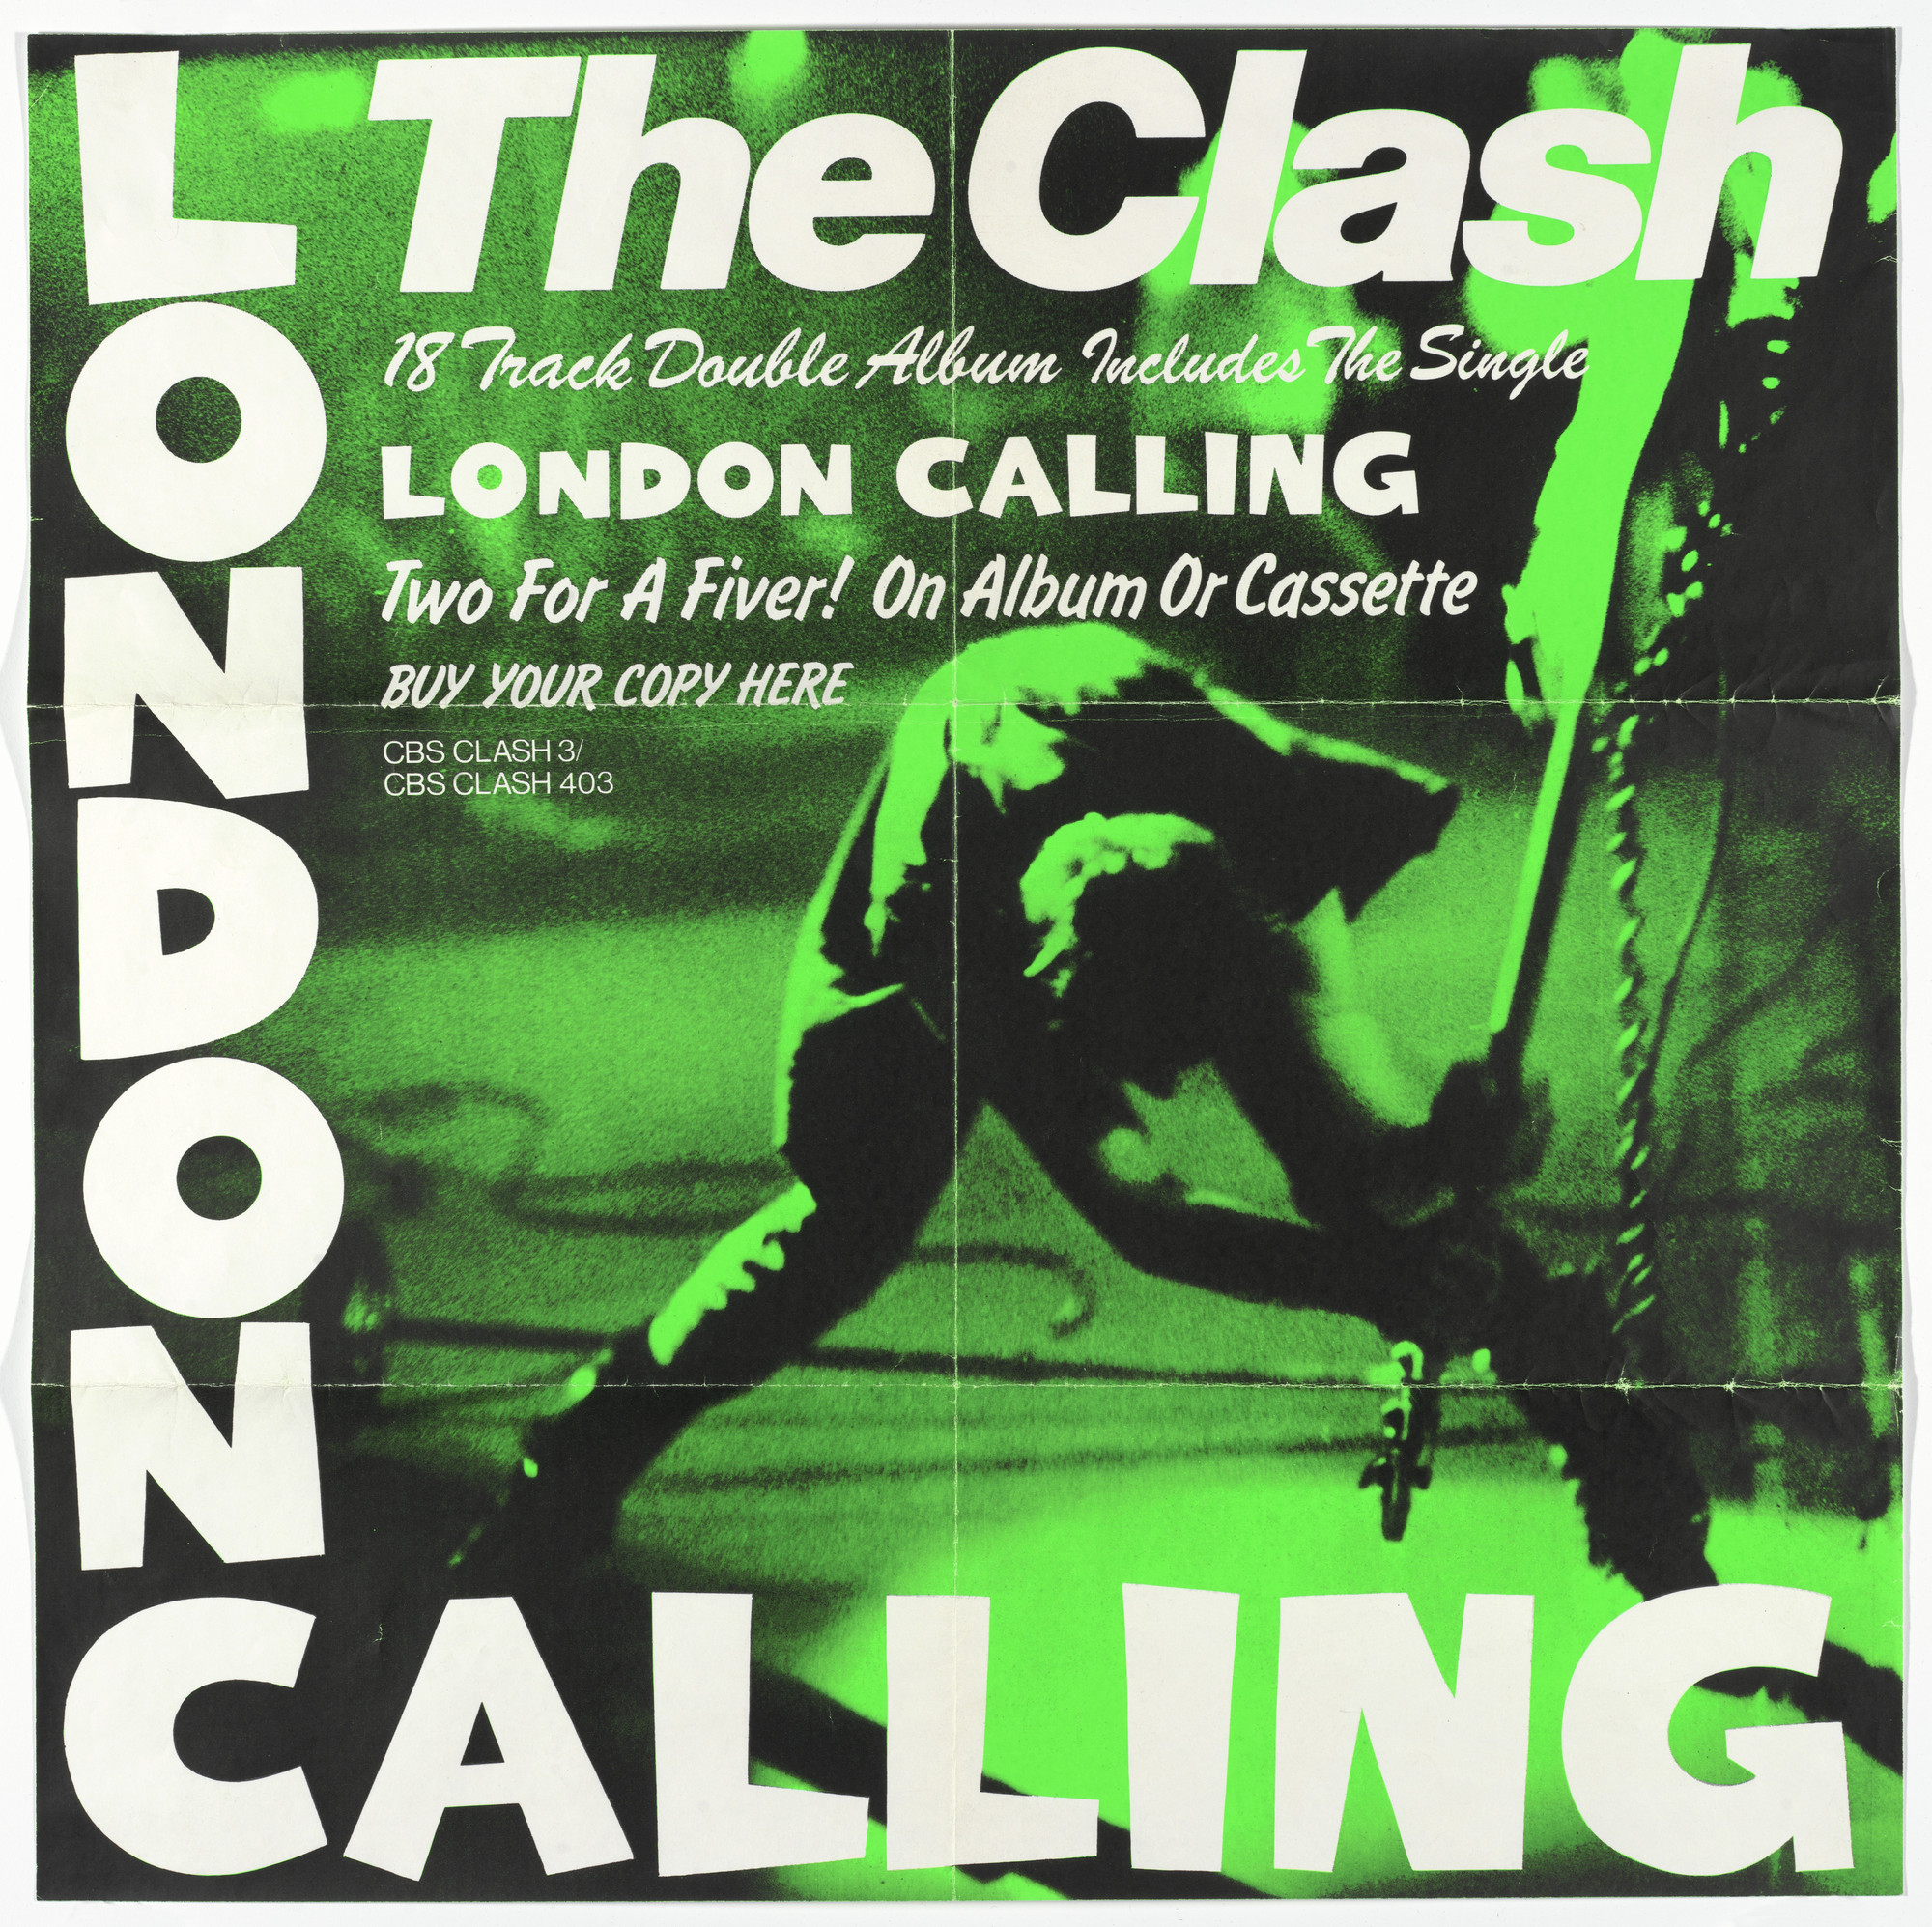 Ray Lowry, Pennie Smith. The Clash, London Calling (Poster for album distributed by Columbia/ CBS Records, New York). 1979